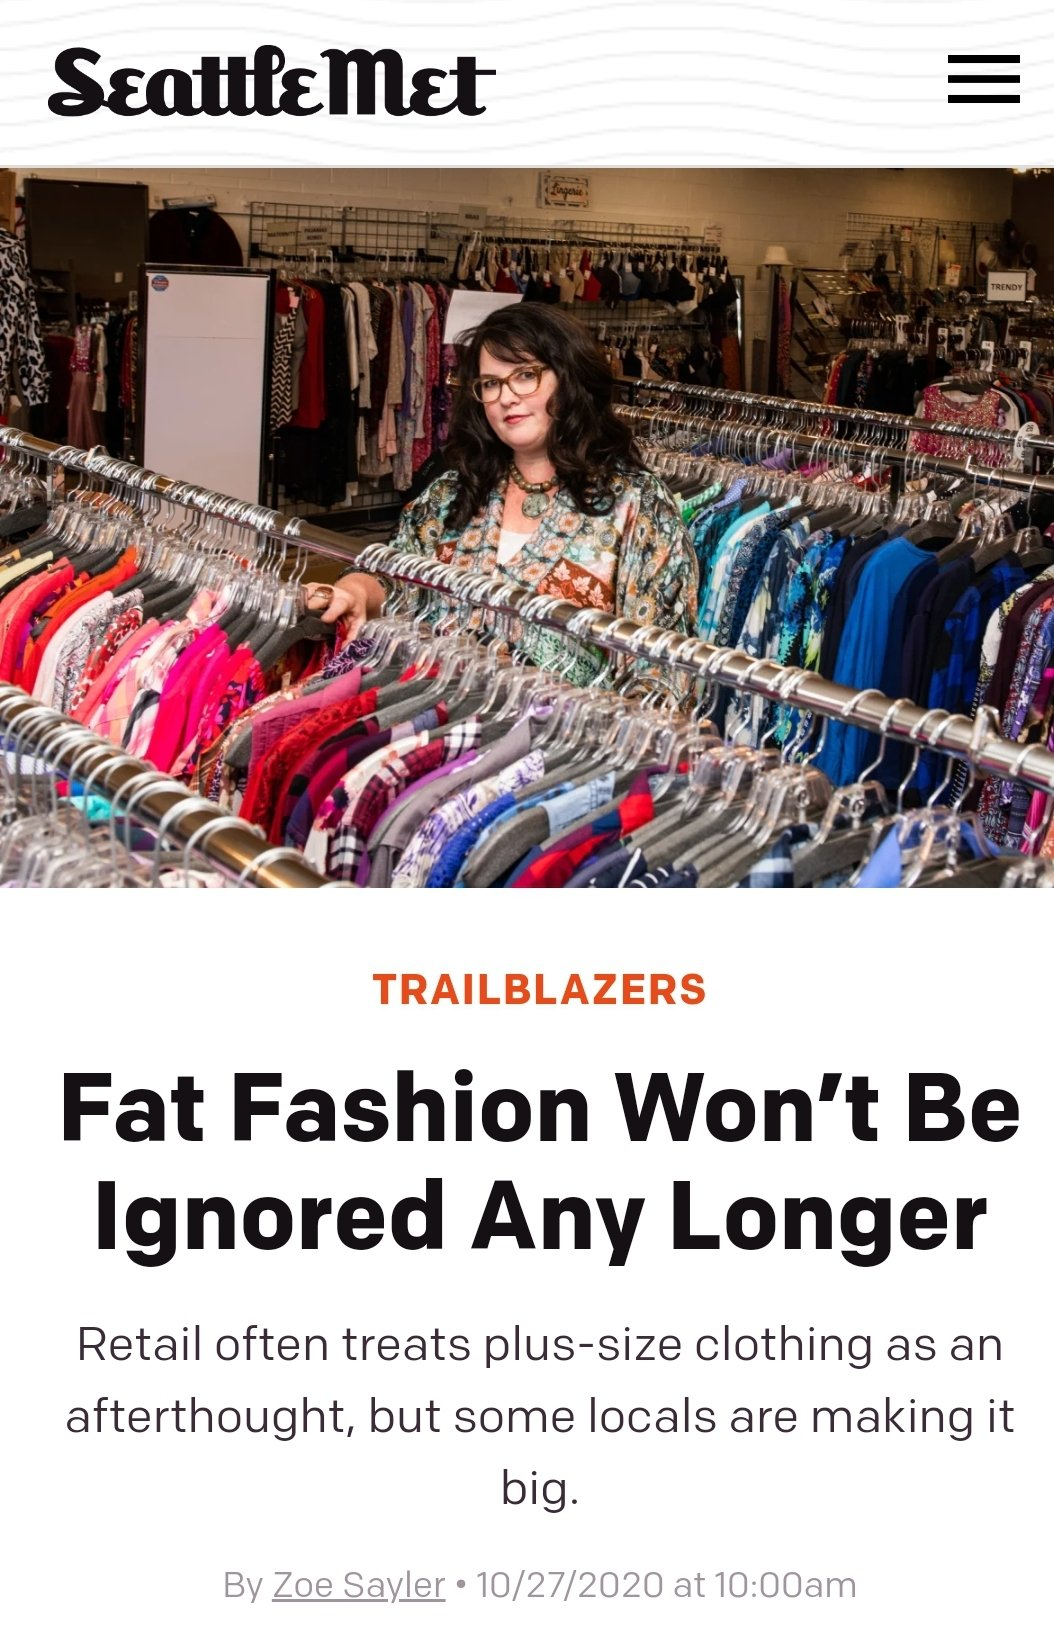 Fat Fashion Won't Be Ignored Any Longer